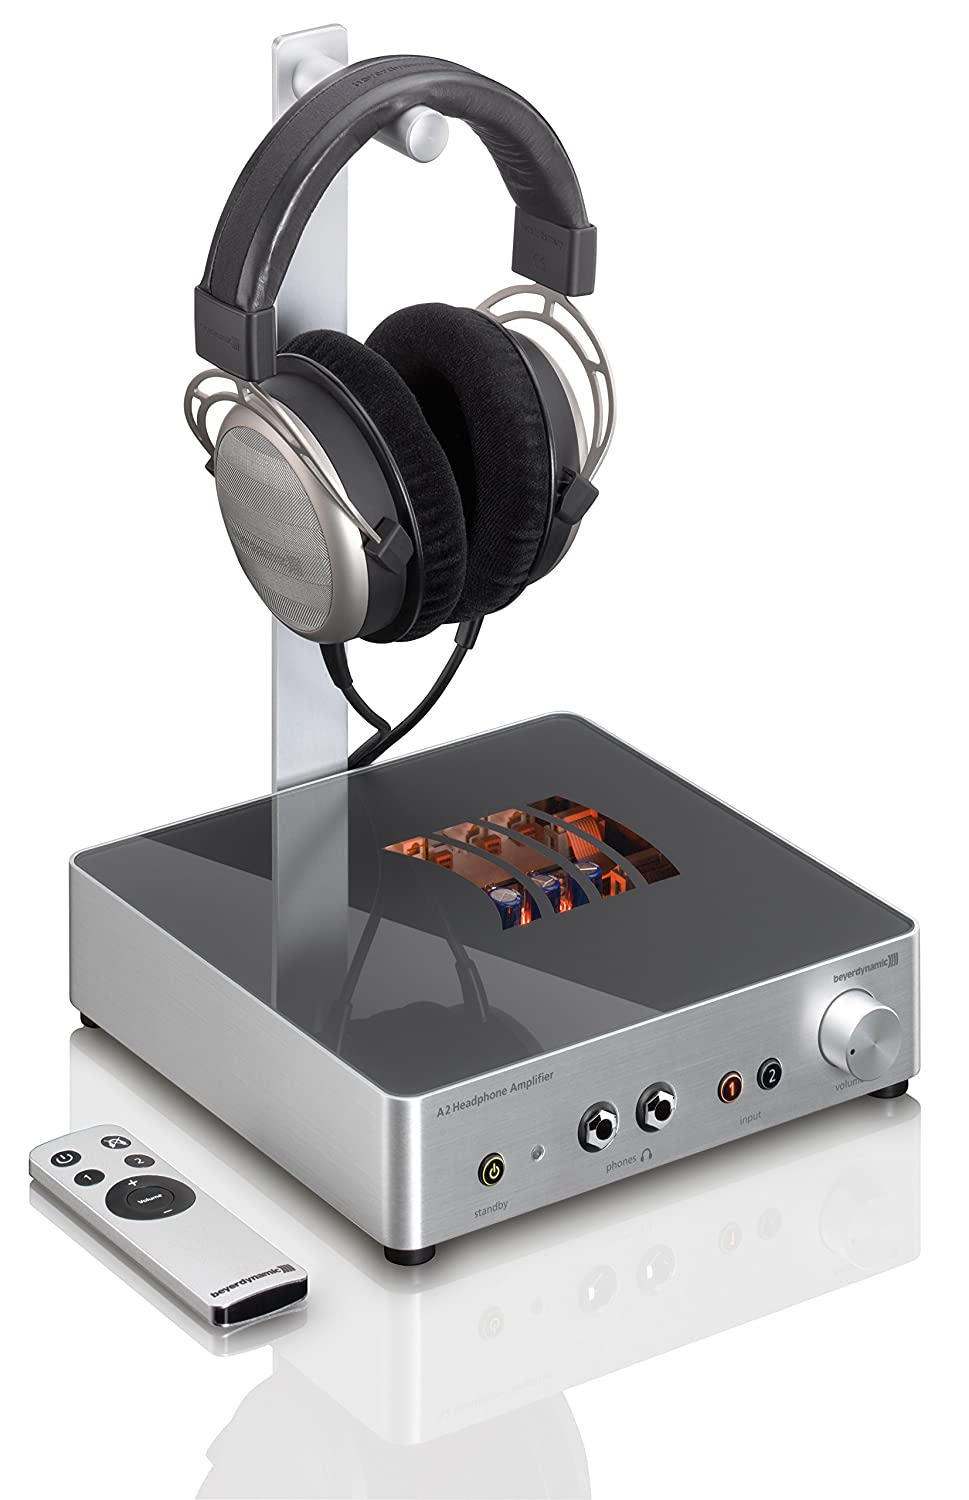 Beyerdynamic A2 Headphone Amplifier Home Audio Theater Using Discrete Components